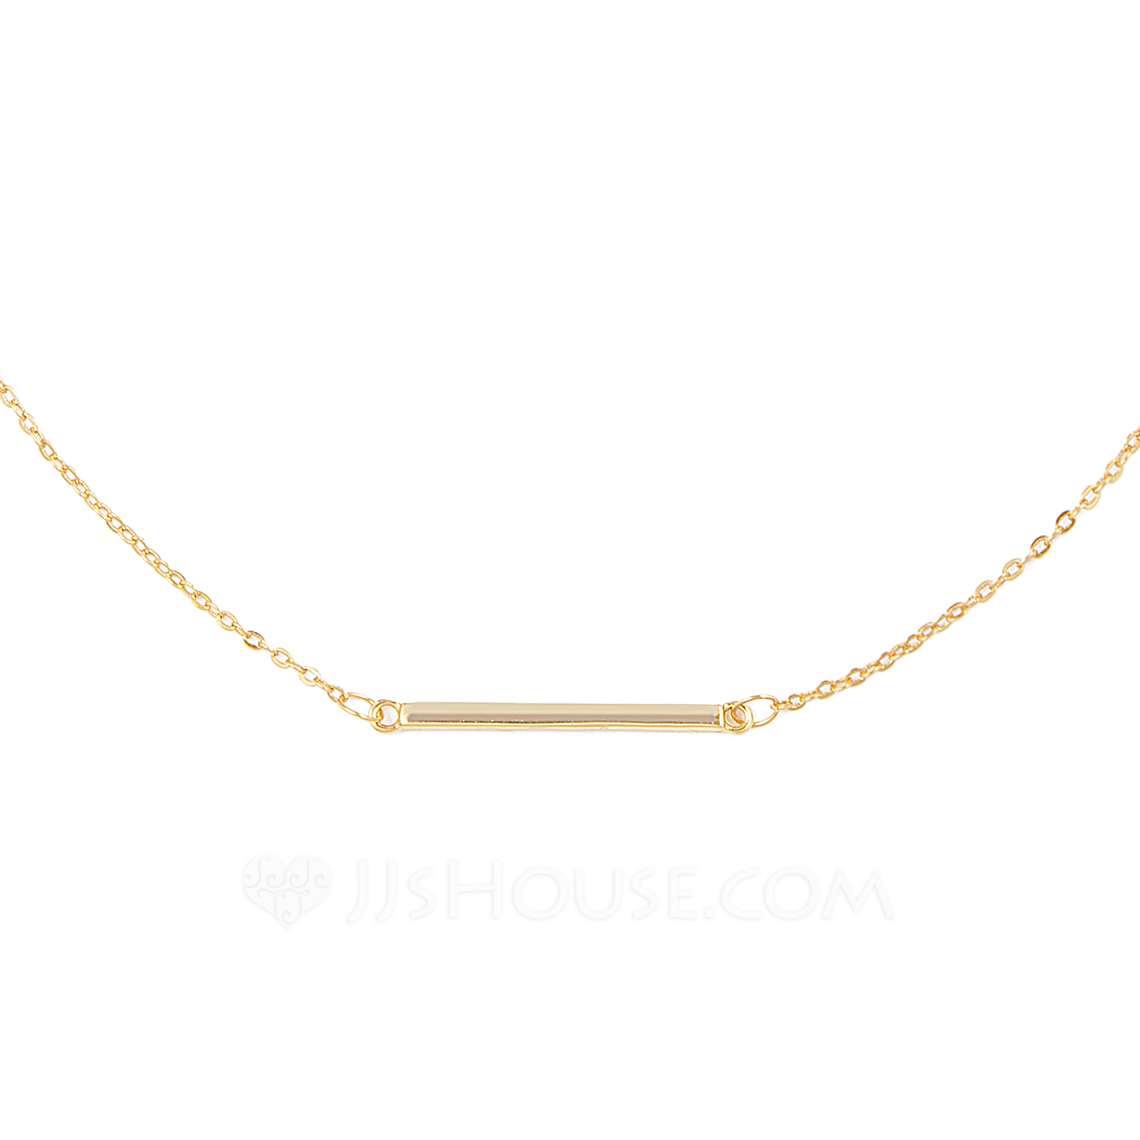 18k Gold Plated Silver Bar Necklace - Birthday Gifts Mother's Day Gifts